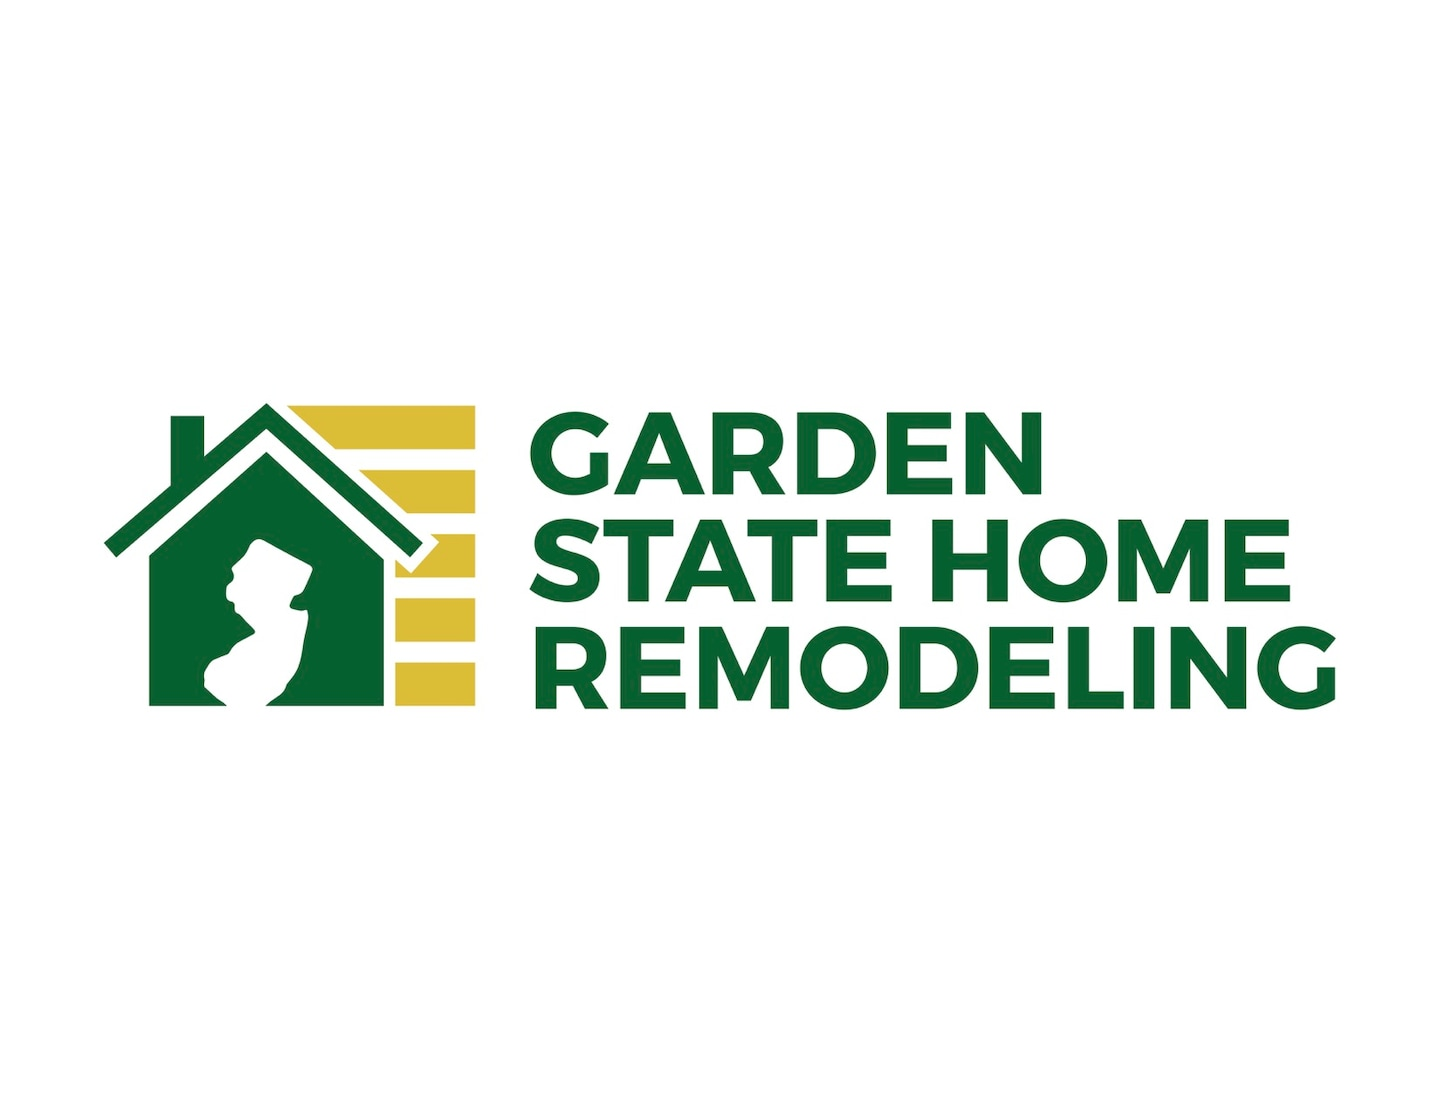 Garden State Home Remodeling